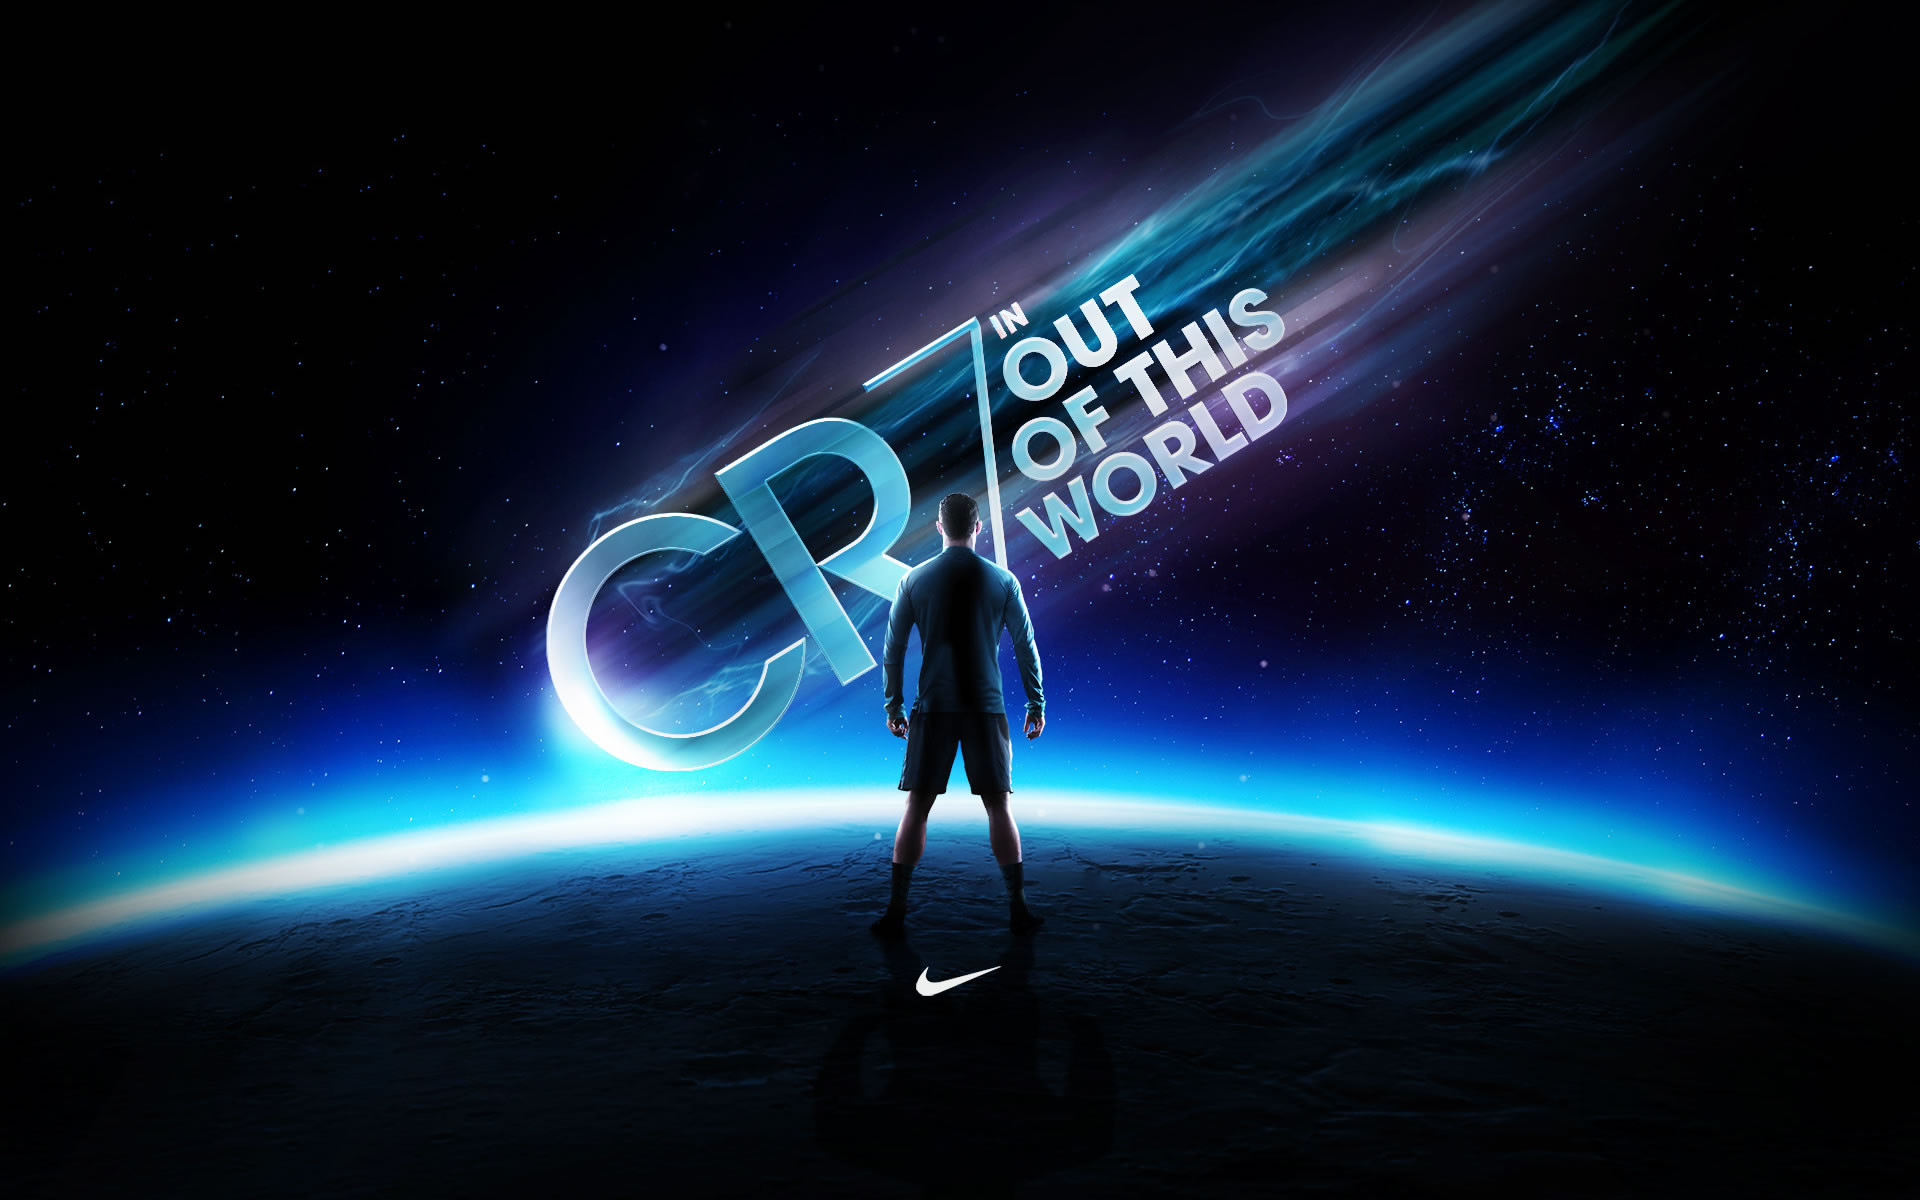 """CR7: """"Out of this world"""" Nike Wallpaper"""